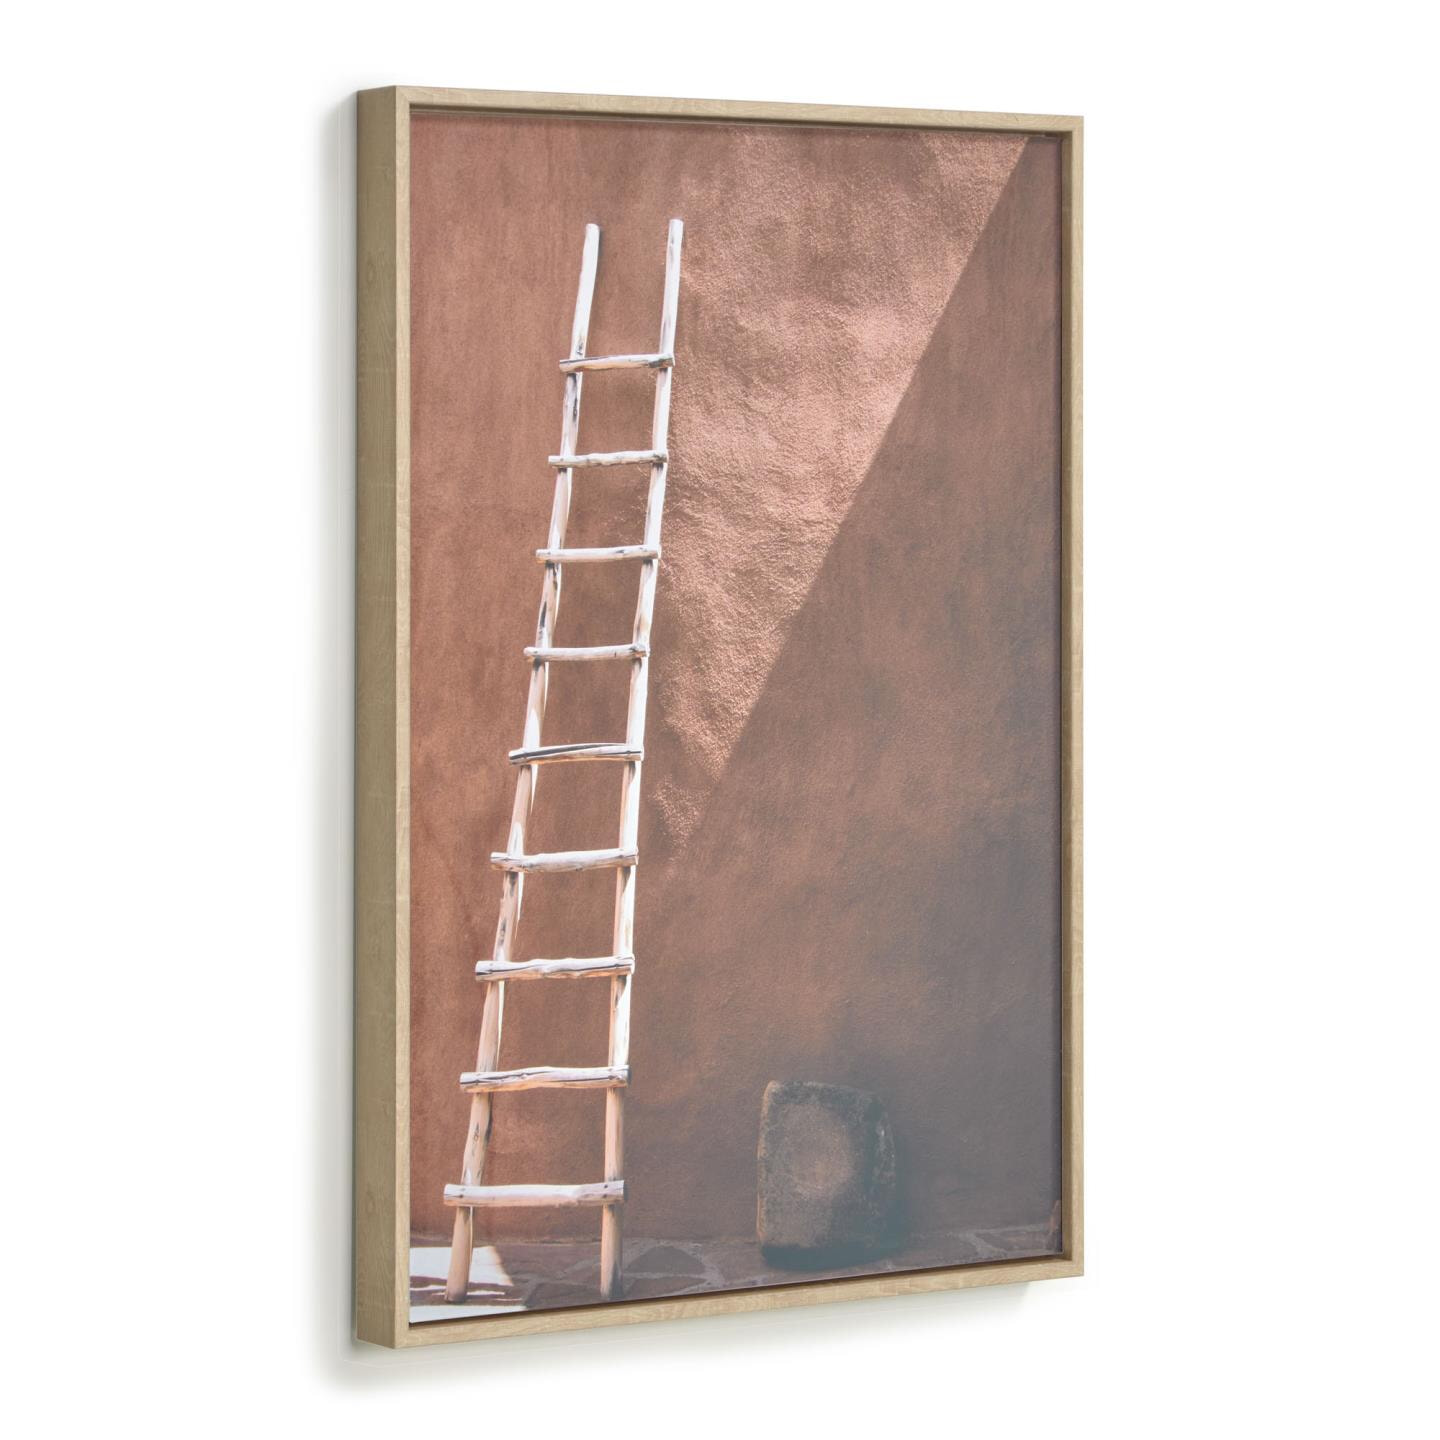 Kave Home Wandpaneel 'Lucie' ladder, 70 x 50cm | Kave Home